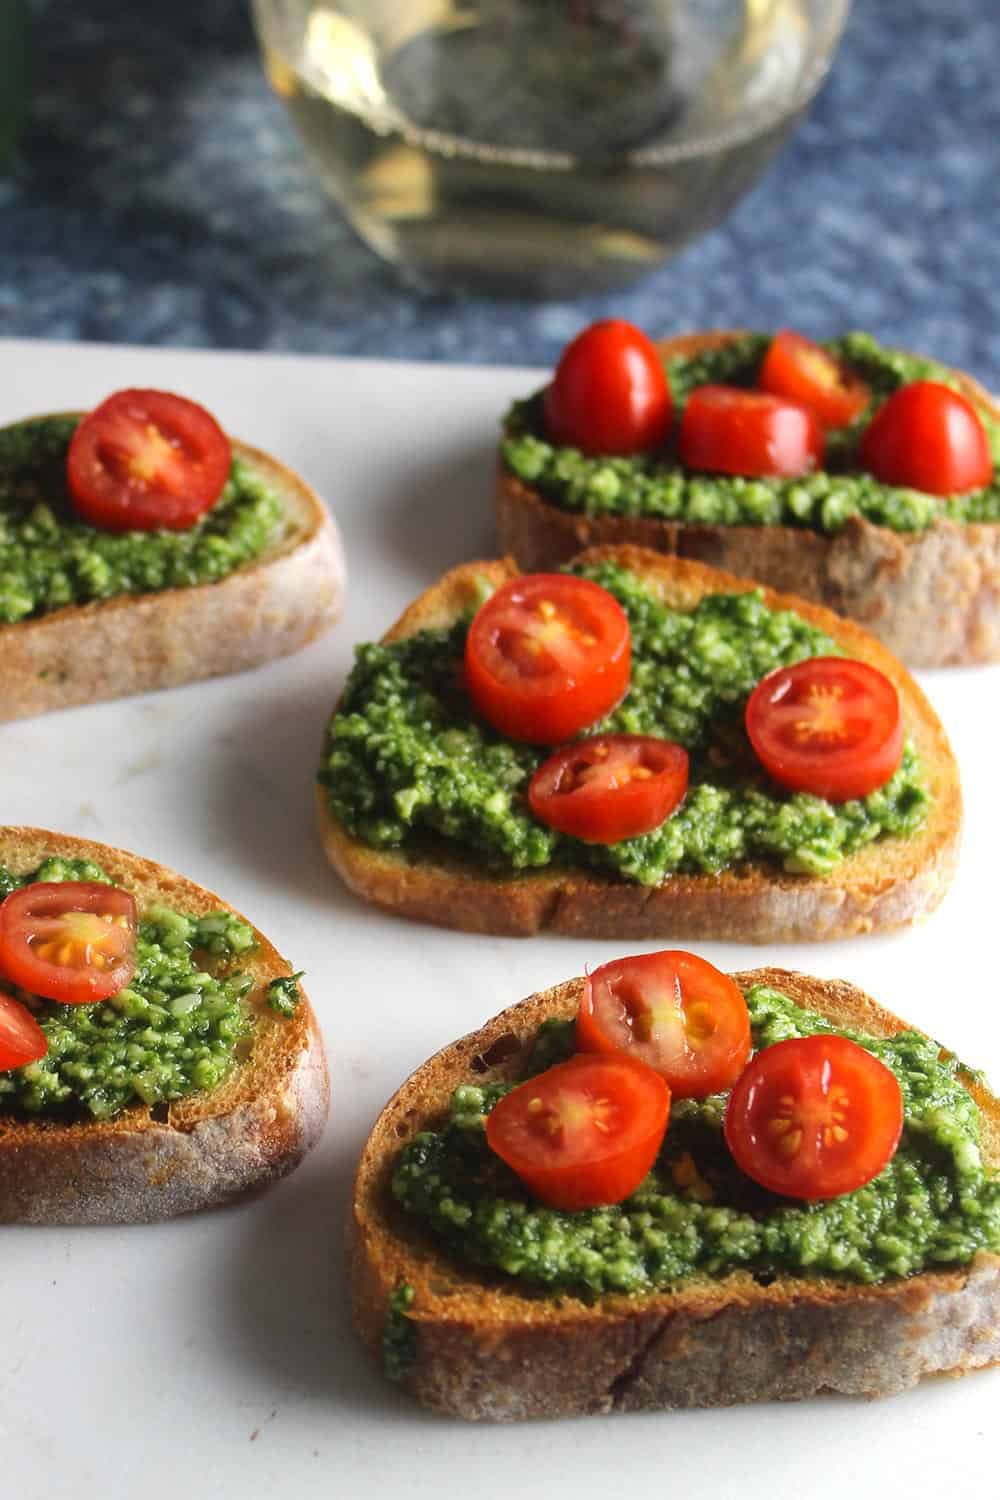 basil pesto crostini served topped with tomatoes